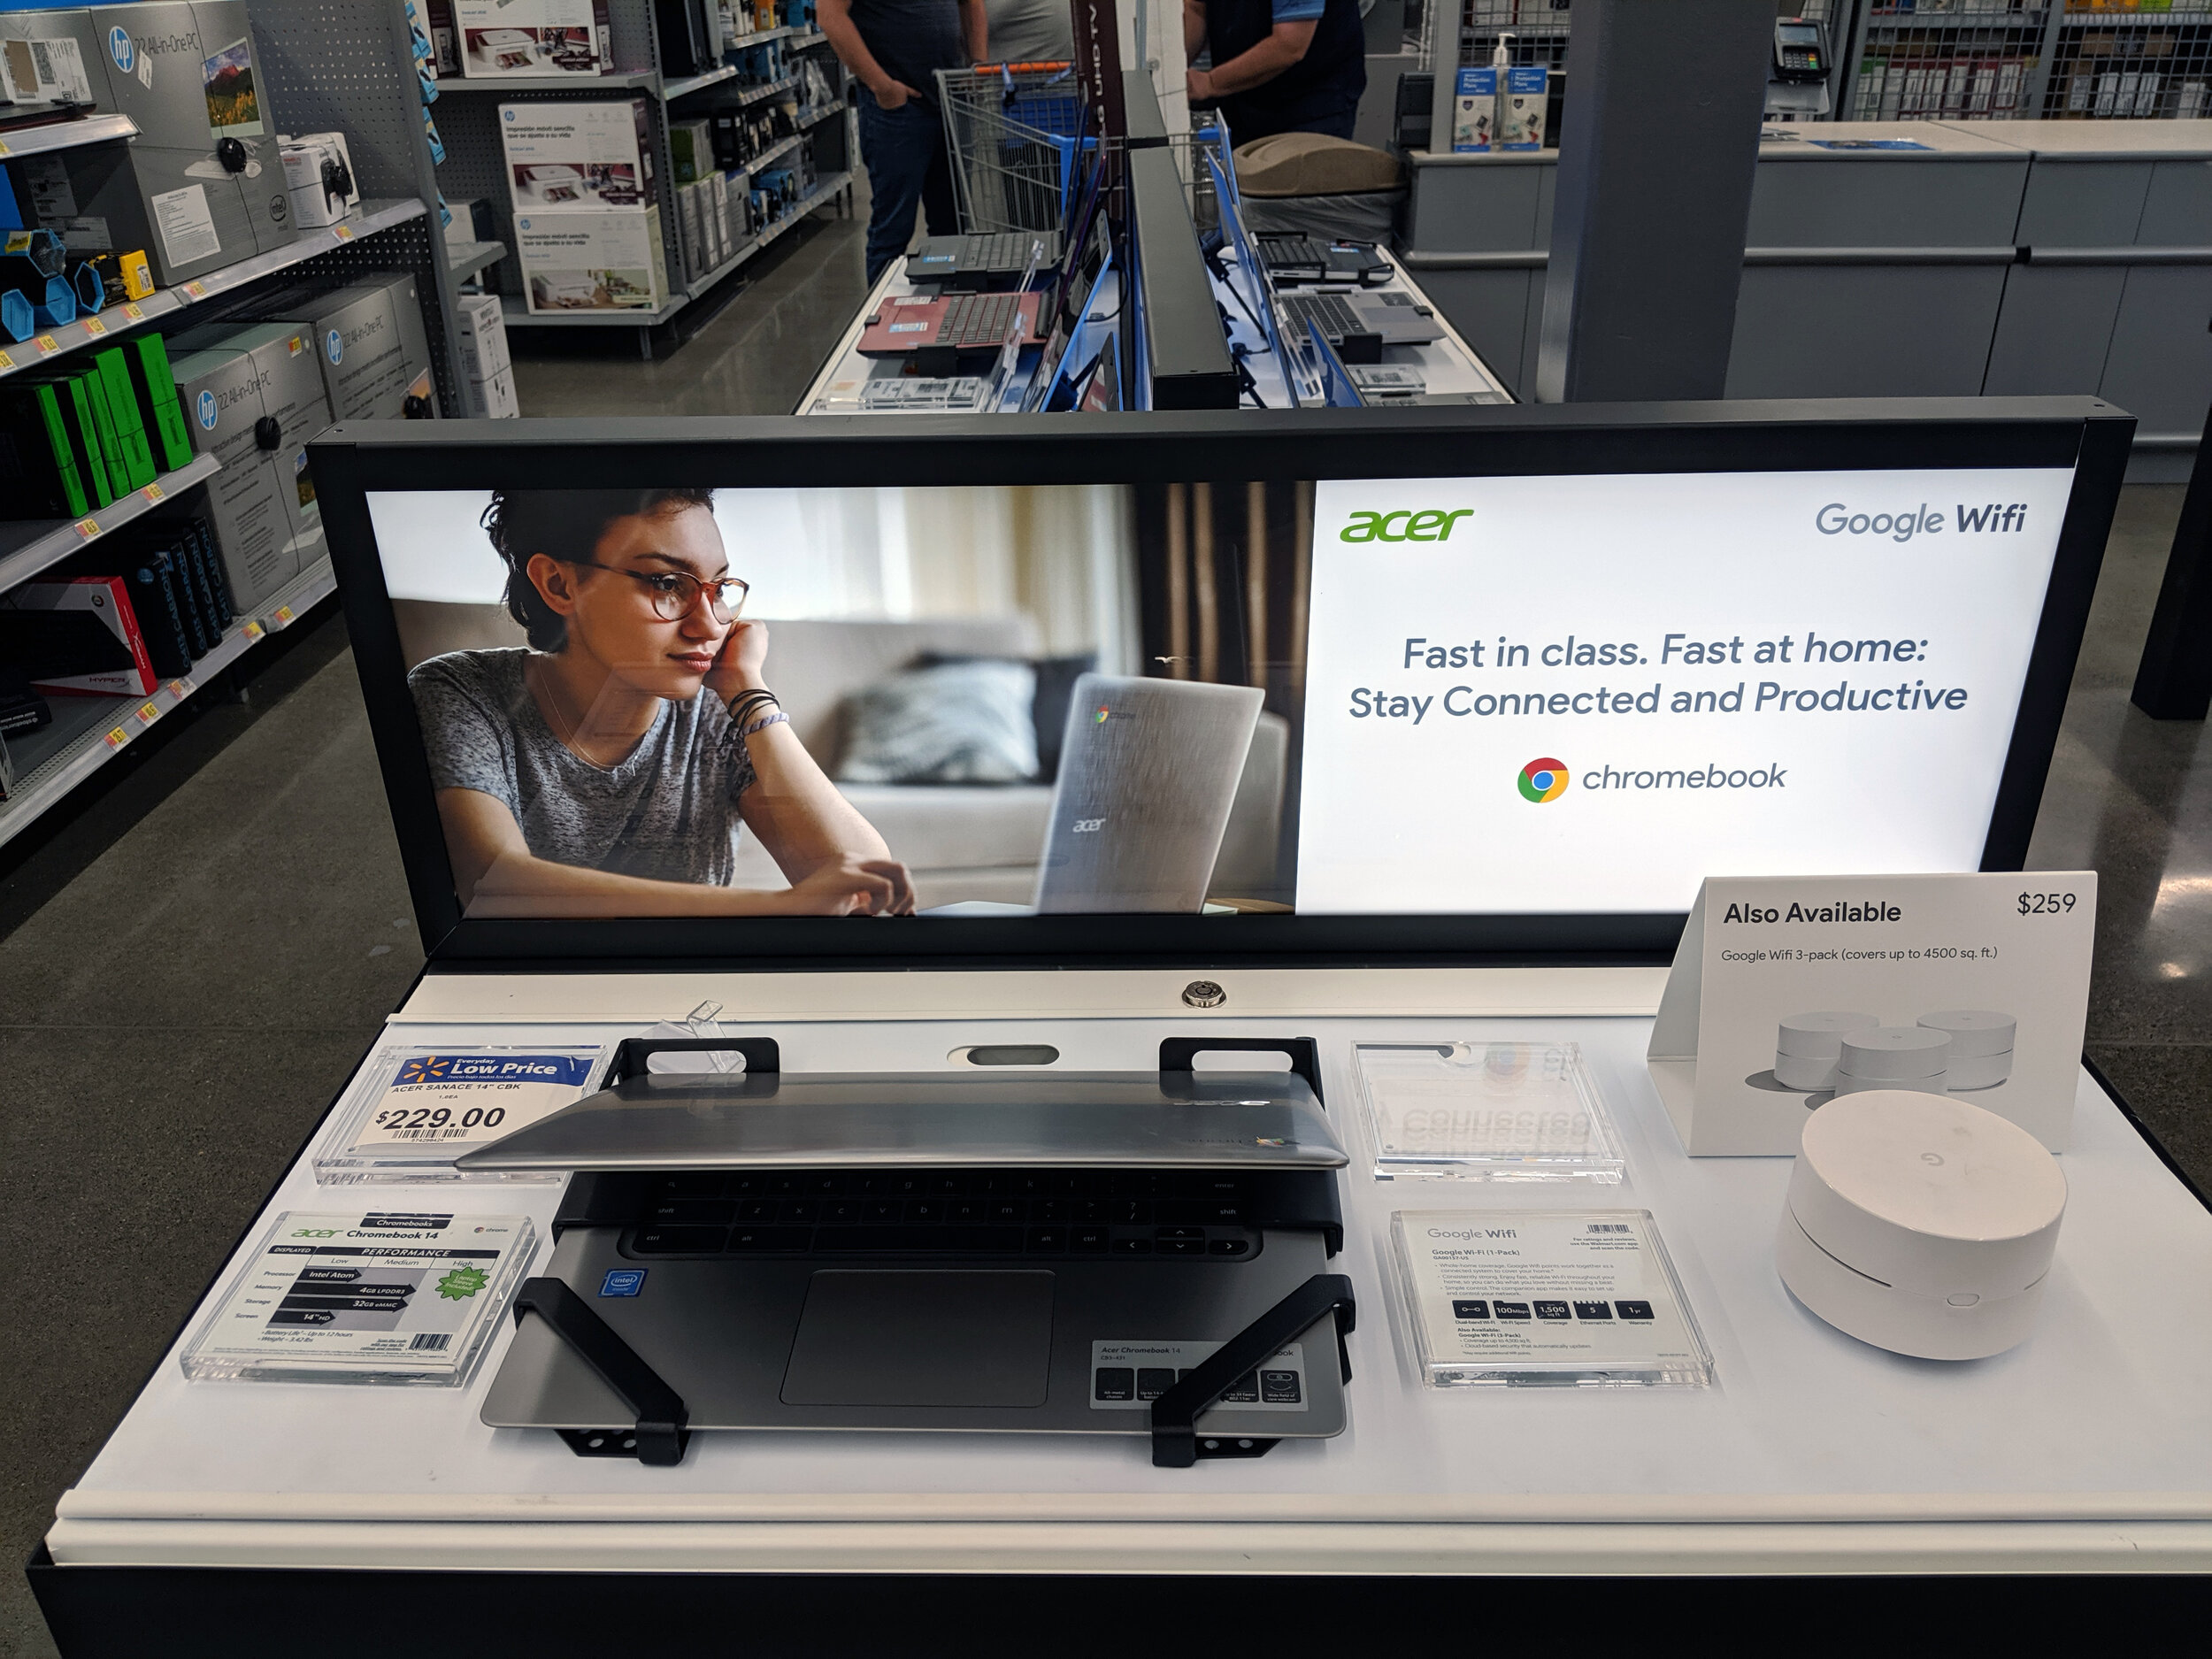 Acer / Google Wifi Display in Stores at Walmart